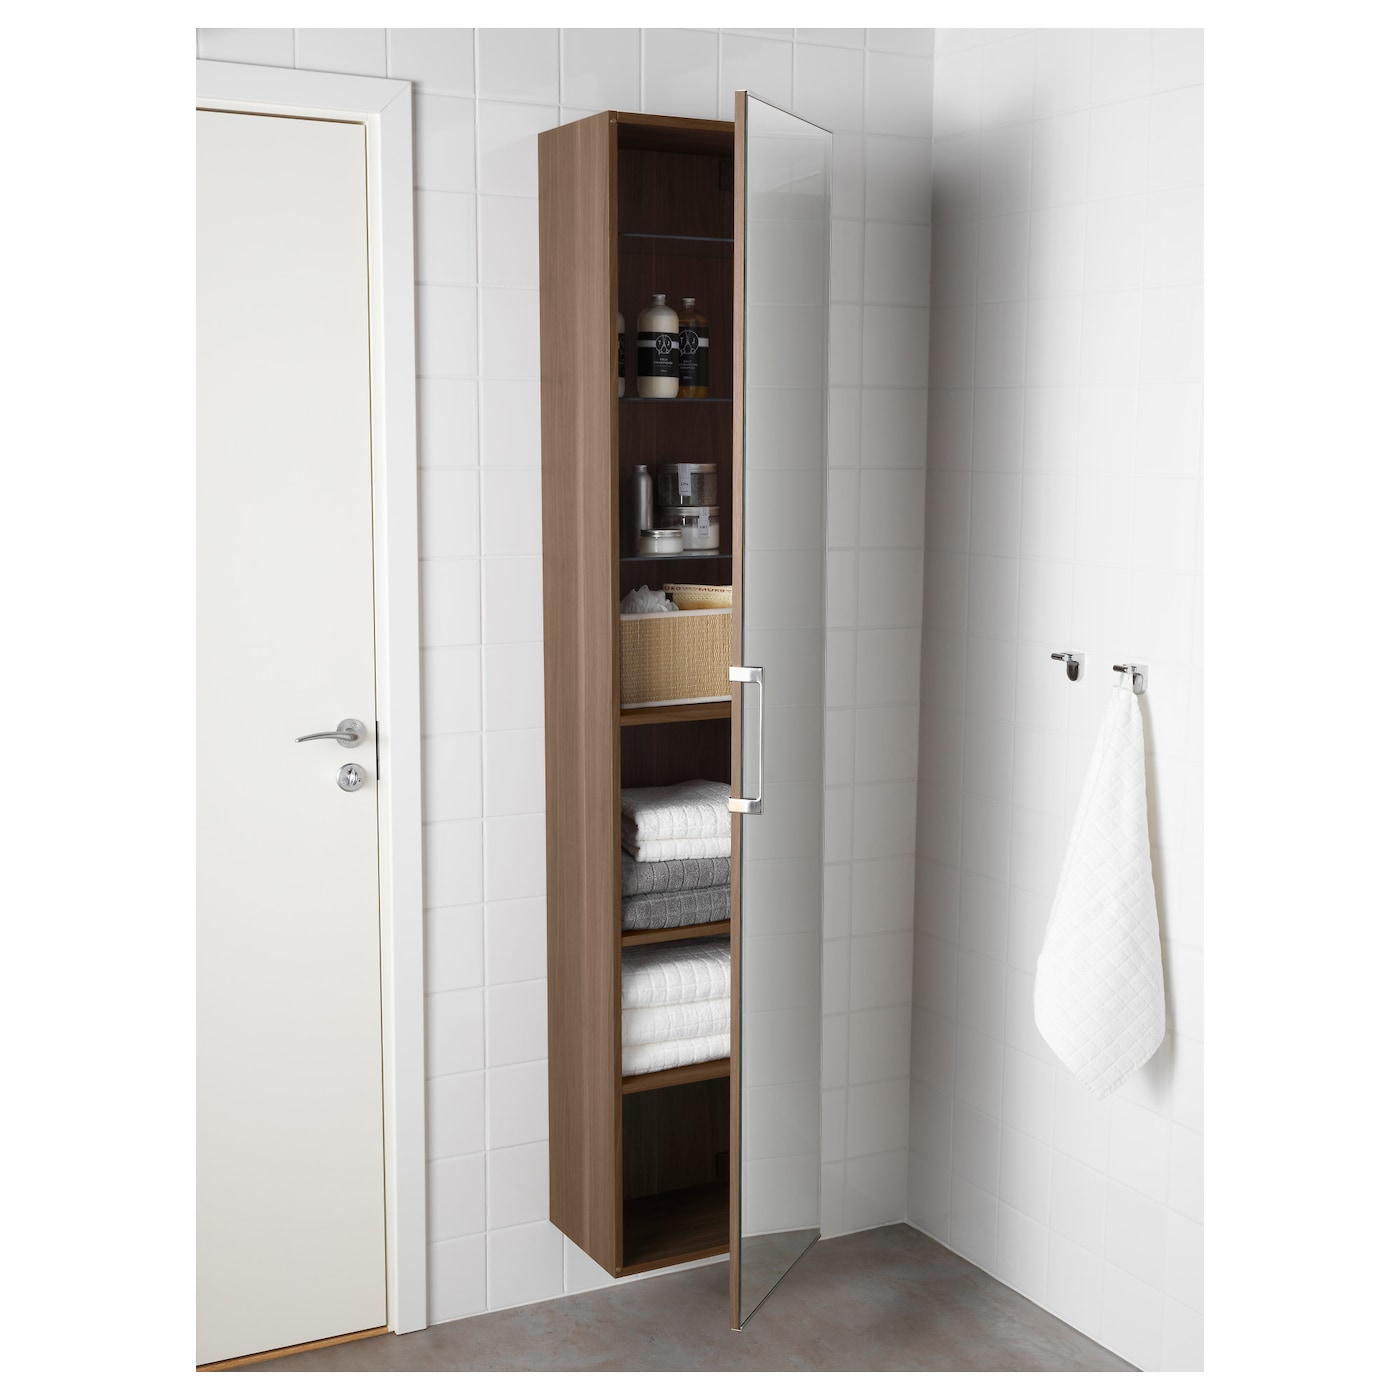 ikea godmorgon high cabinet with mirror door you can mount the door to